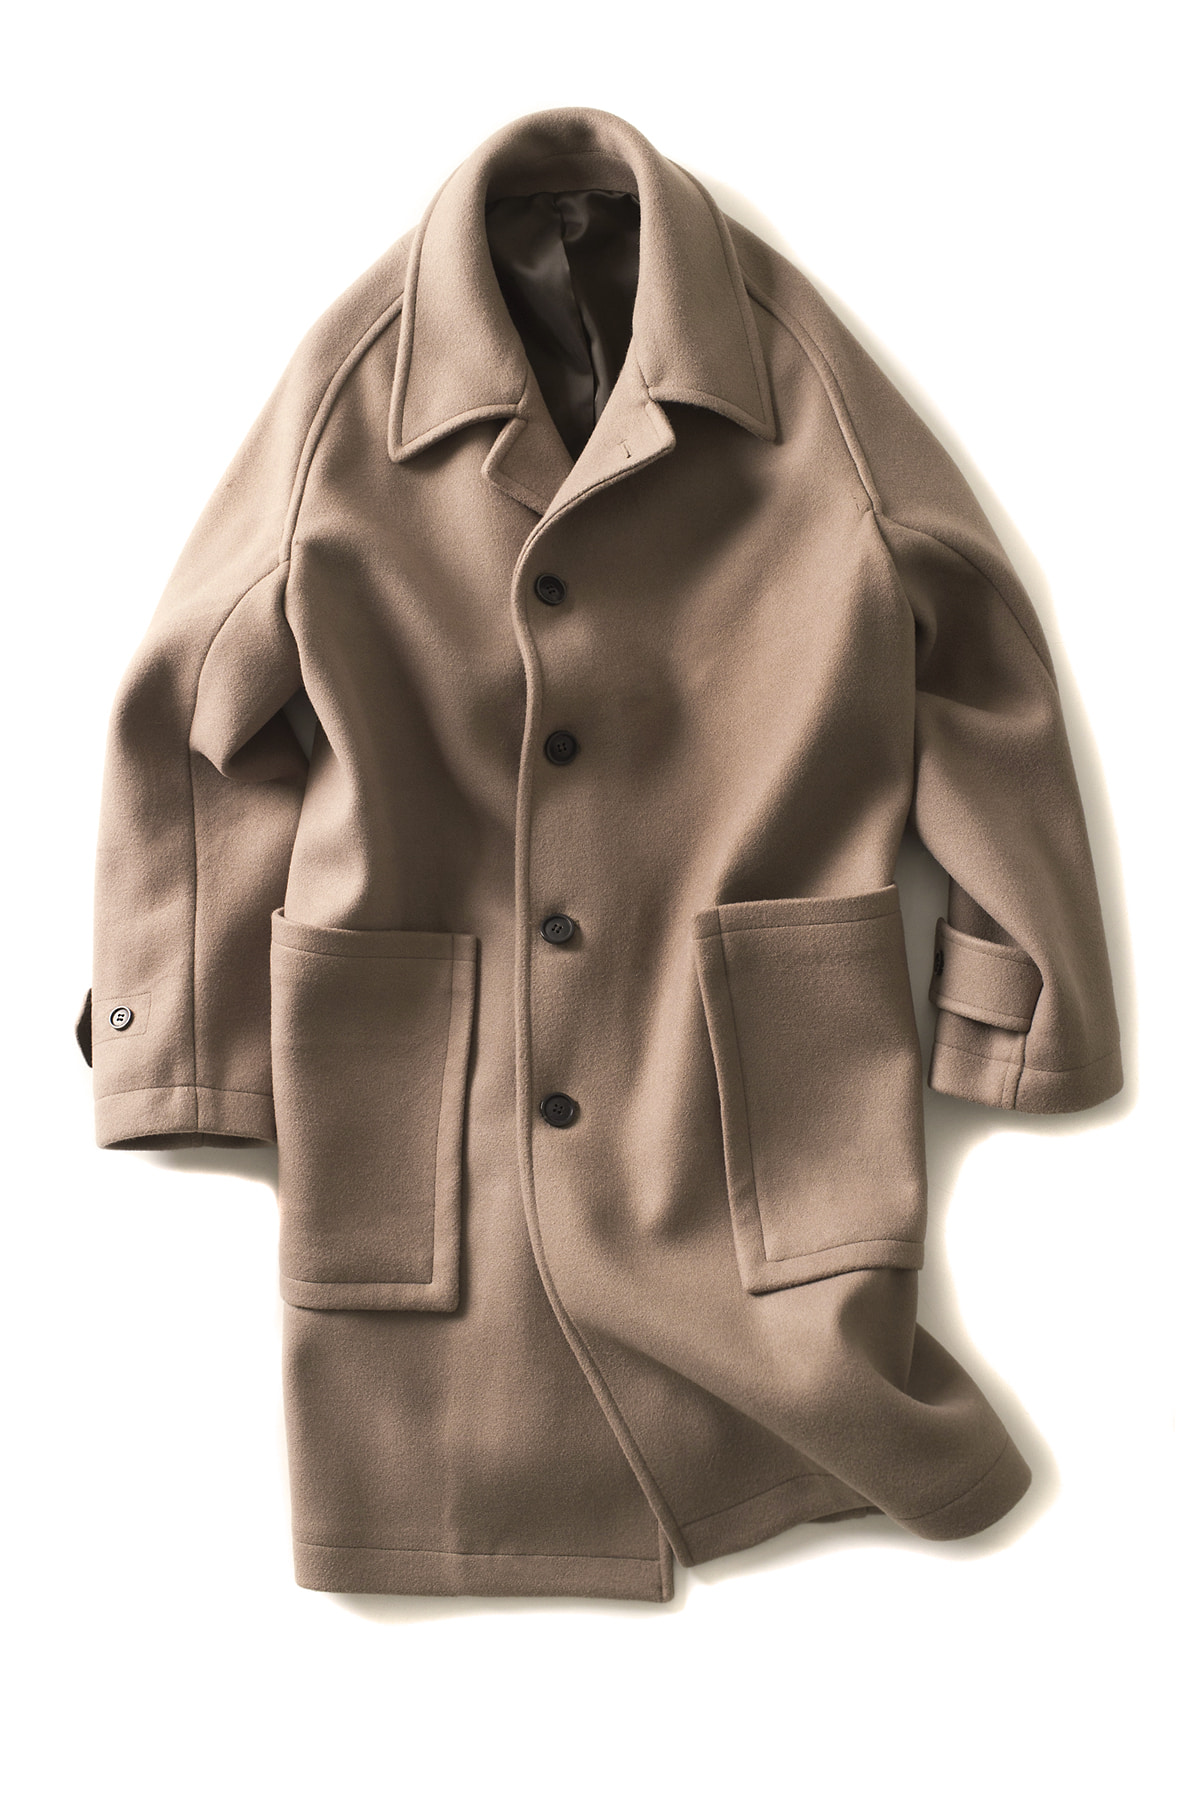 BIRTHDAYSUIT : Leck Coat (Cocoa)